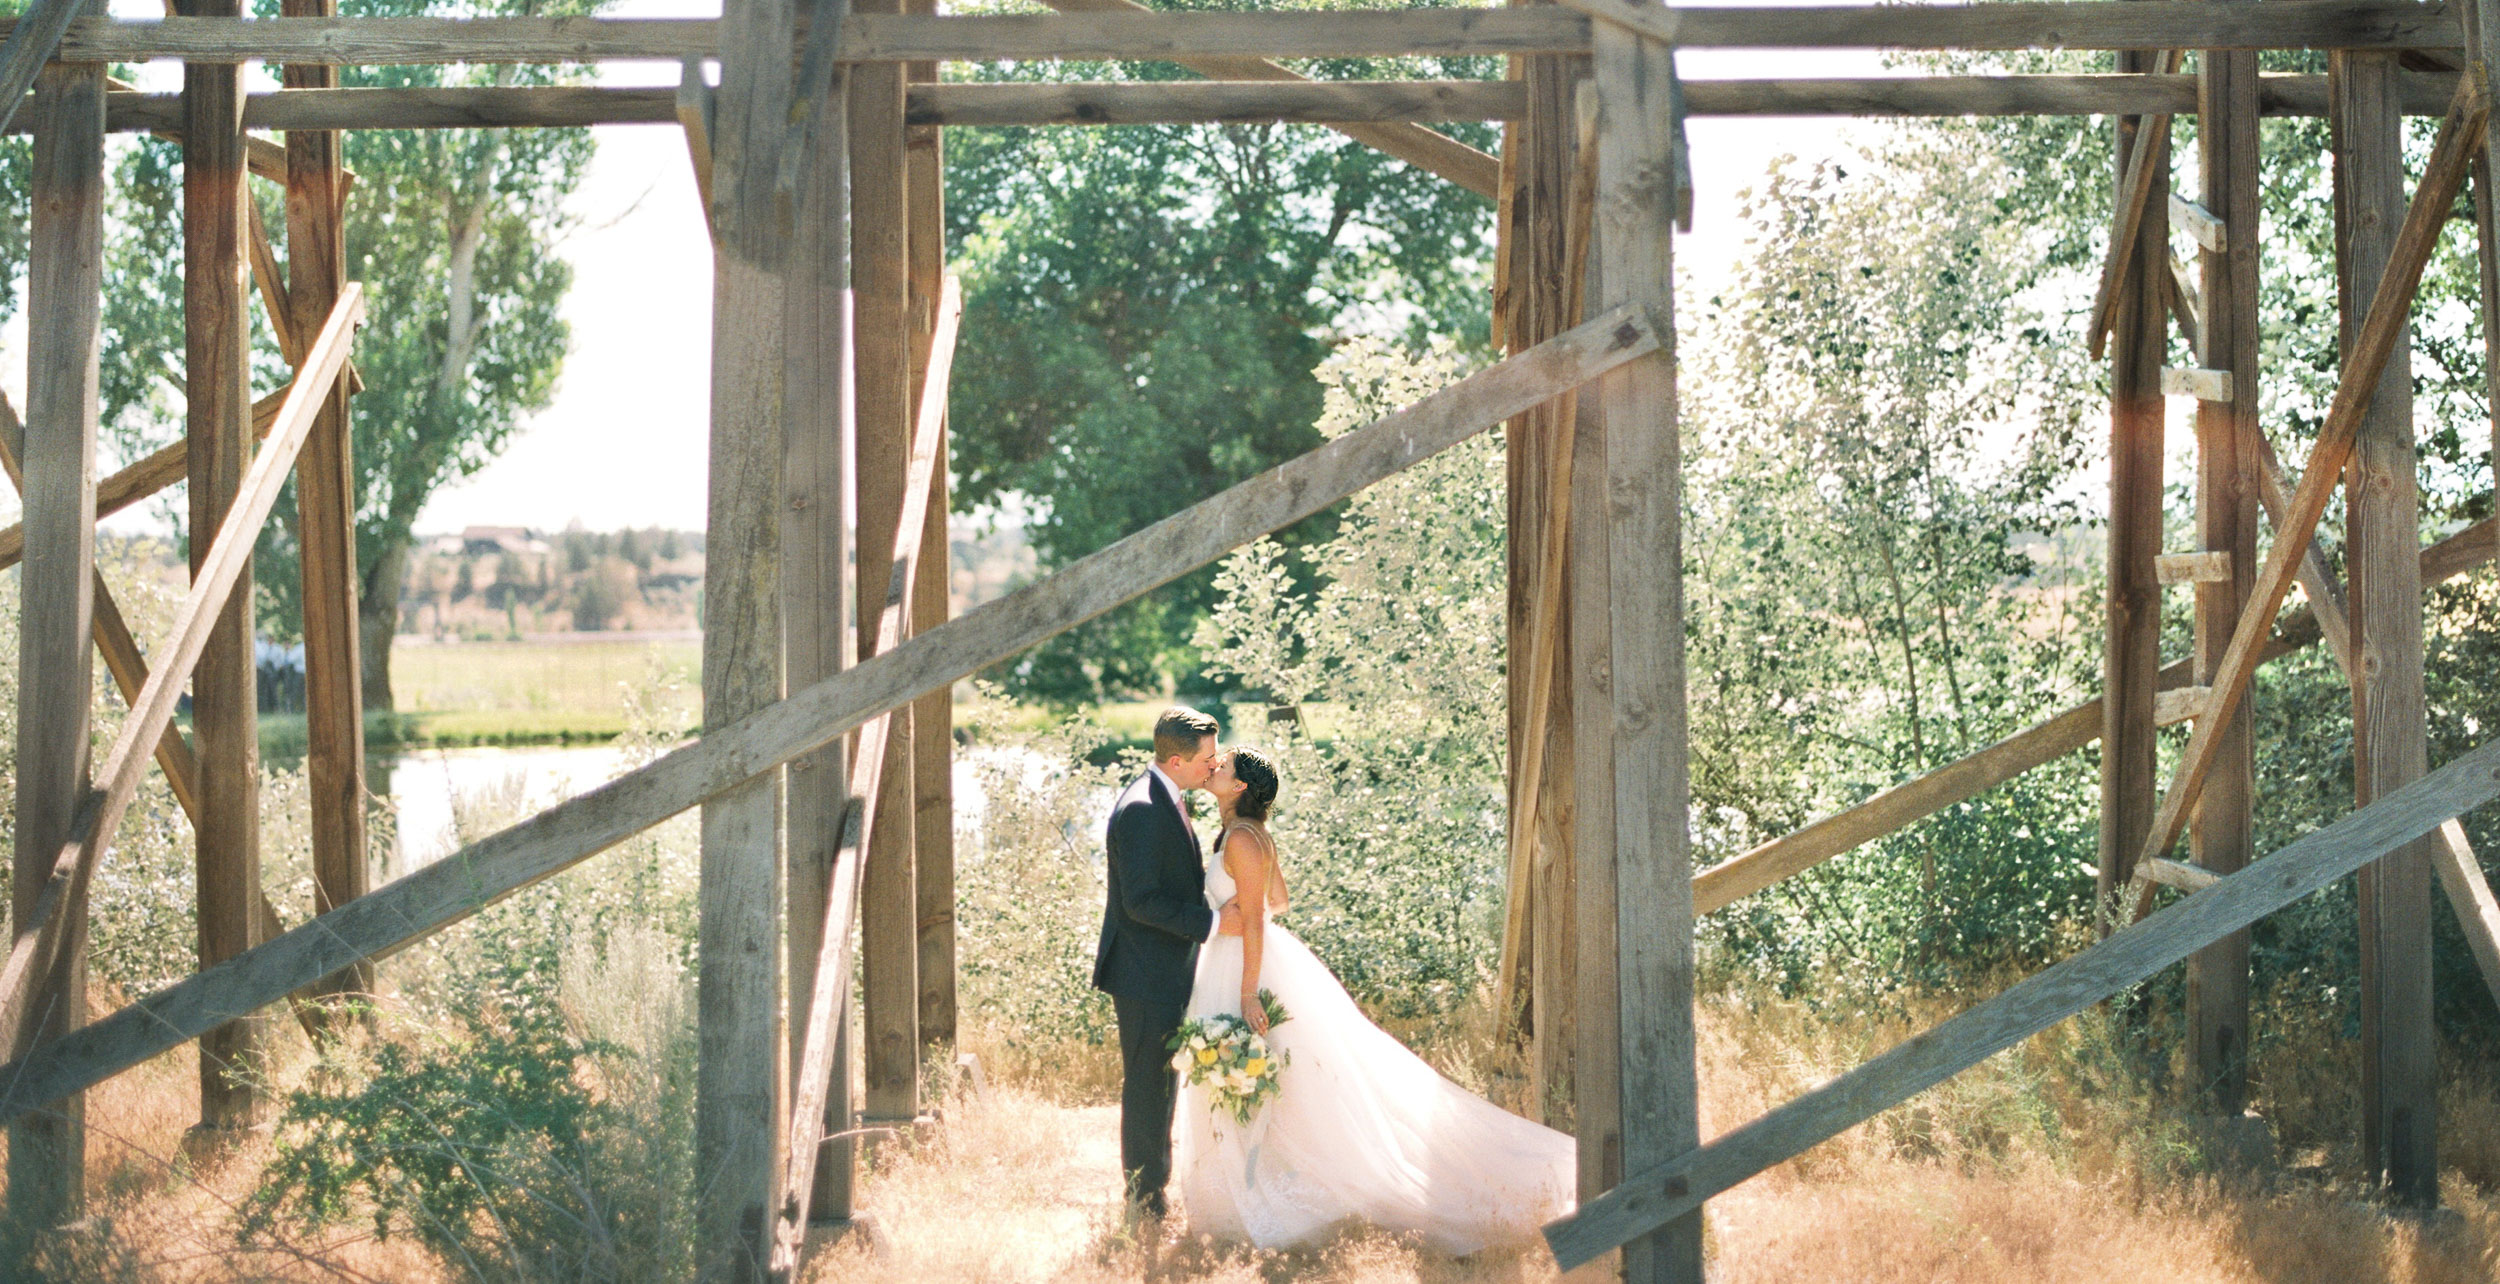 019Napa_Portland_SanFrancisco_LosAngeles_wedding_photographer_and_videographer_destination_and_elopement_photography_and_videography.jpg